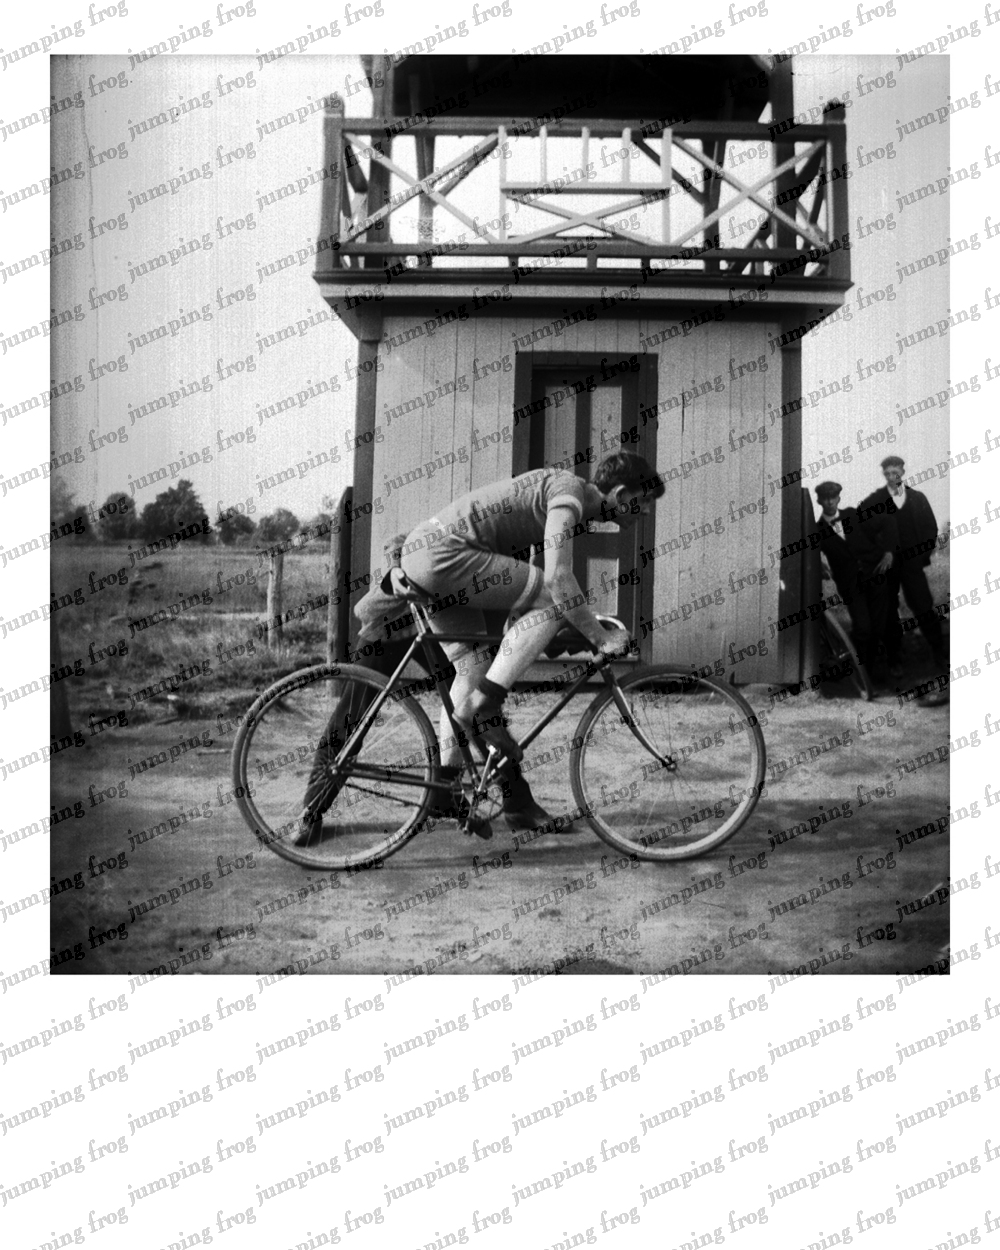 Bicyclist & friends observation tower 8x10 ca 1890s